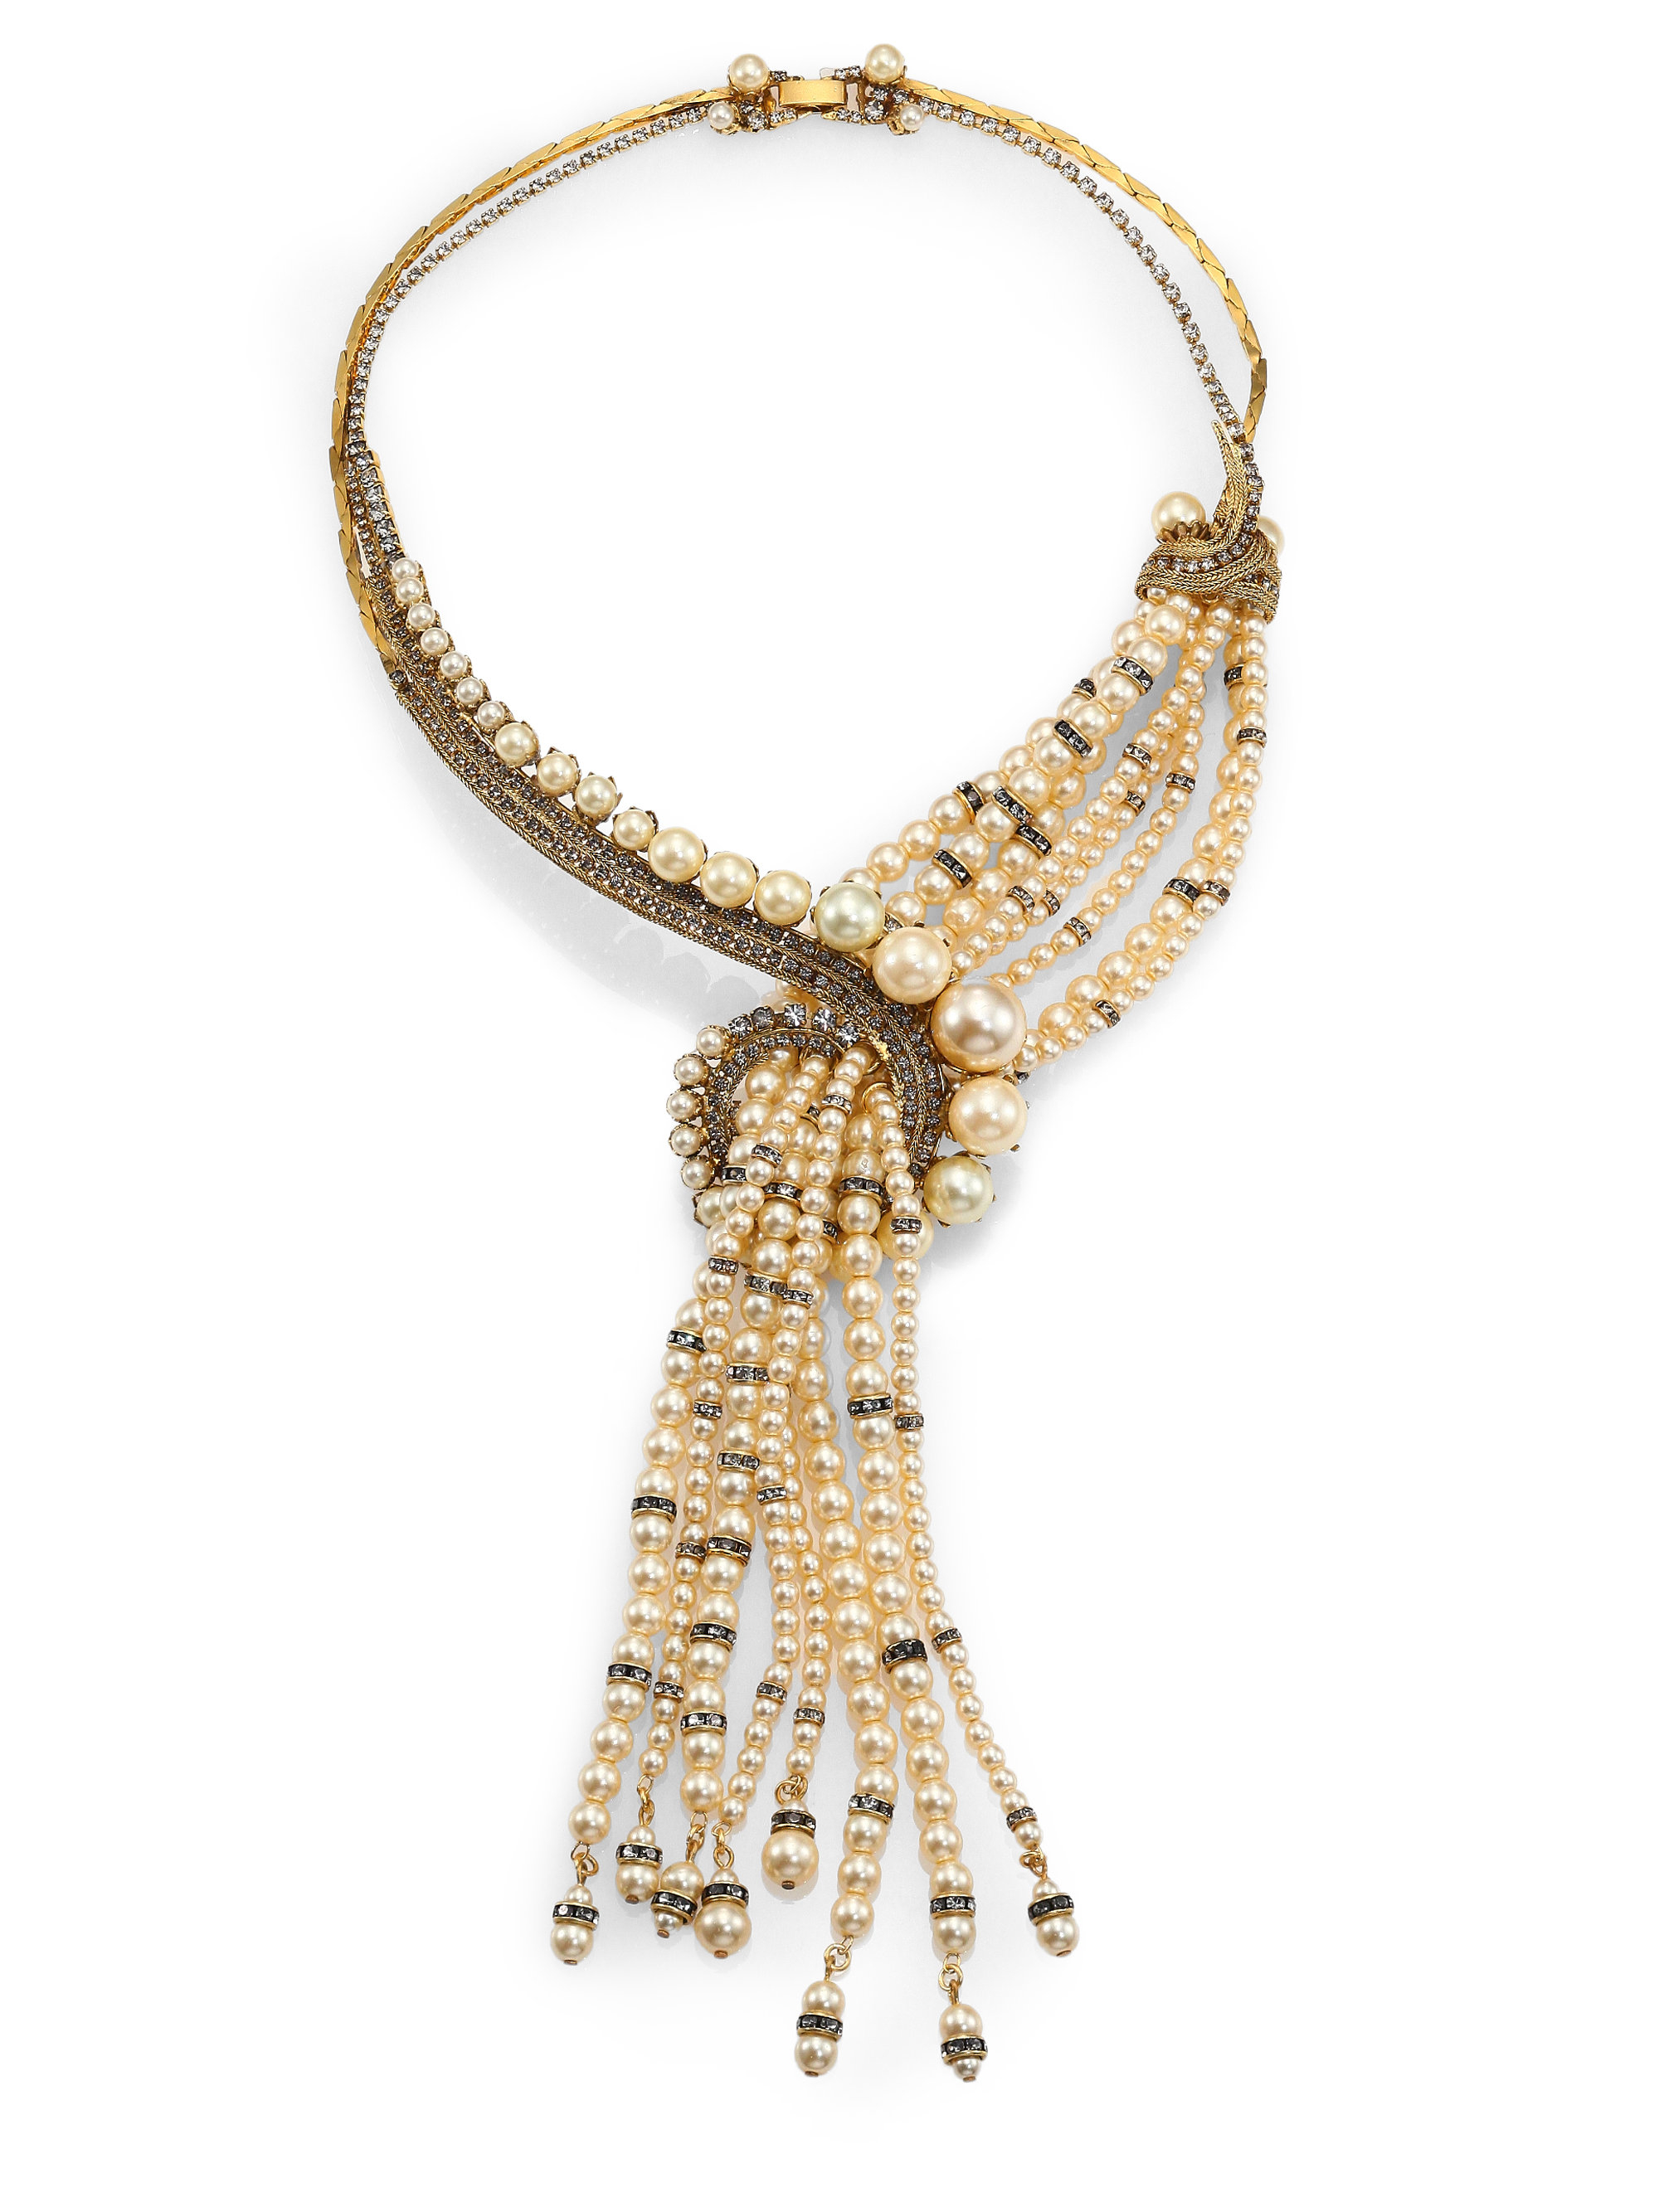 Lyst - Erickson Beamon Stratosphere Crystal & Faux Pearl Statement ...